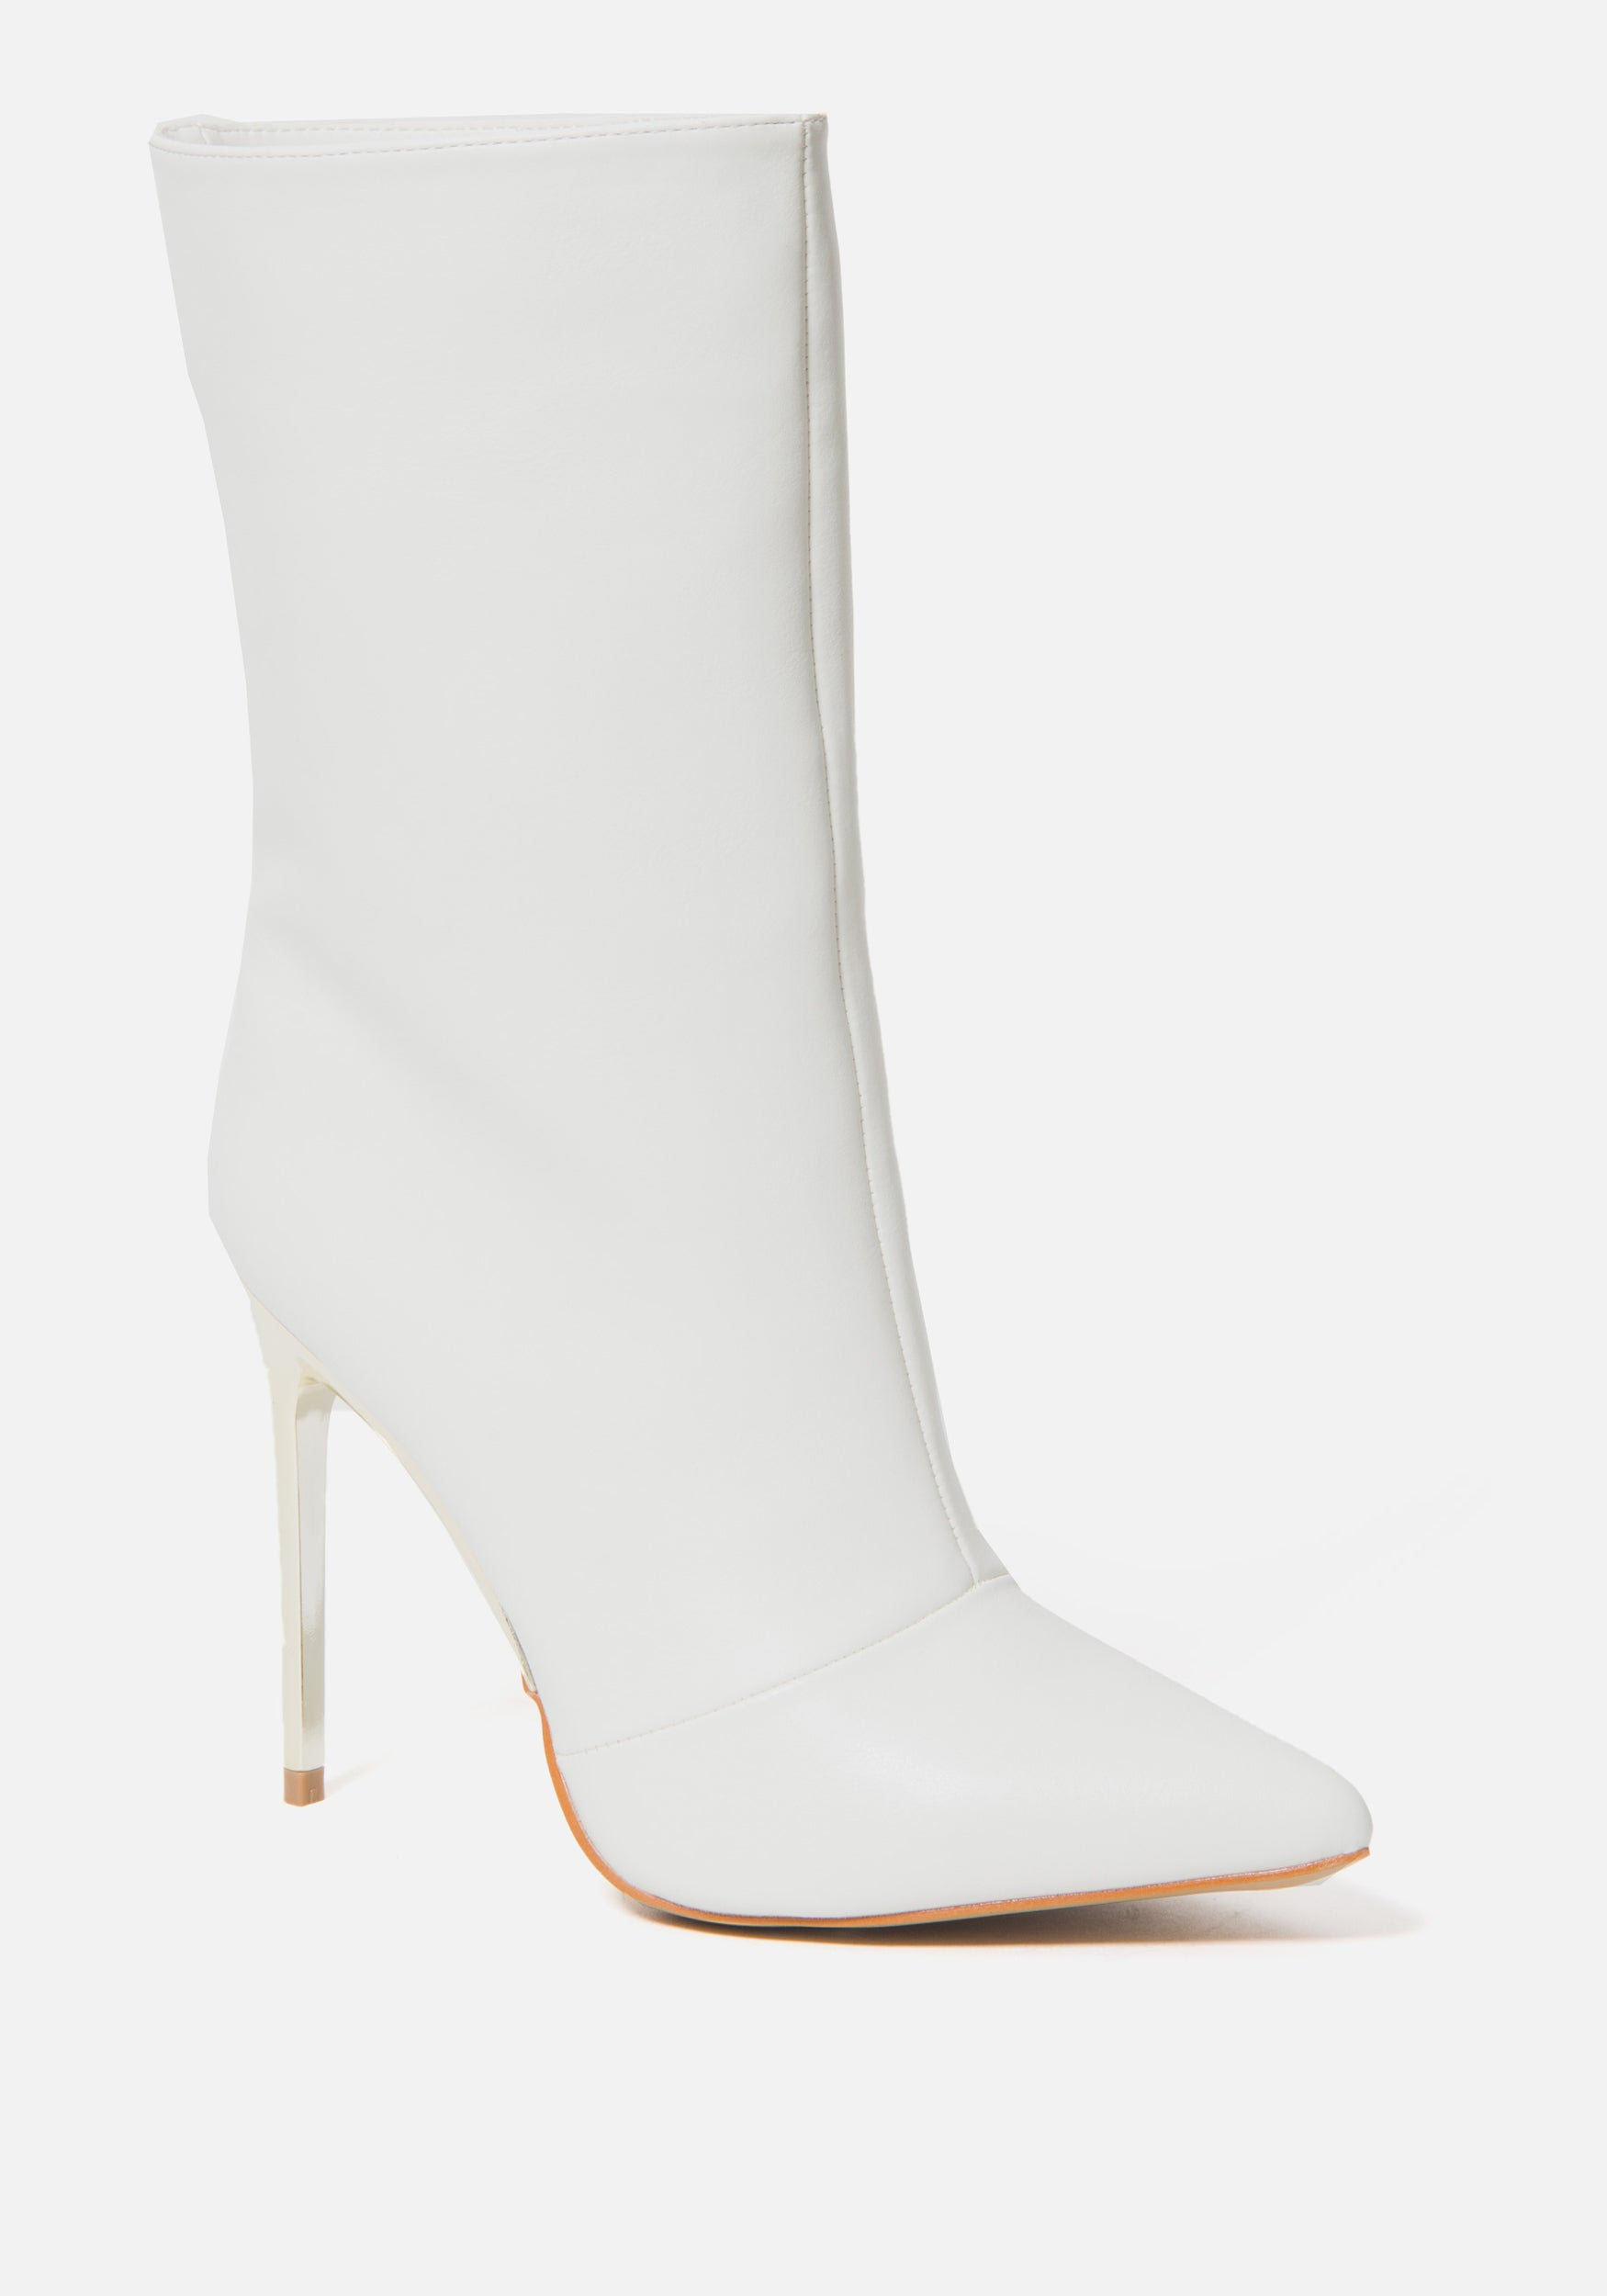 Bebe Women's Vanila Mid High Booties, Size 6 in WINTER WHITE Synthetic